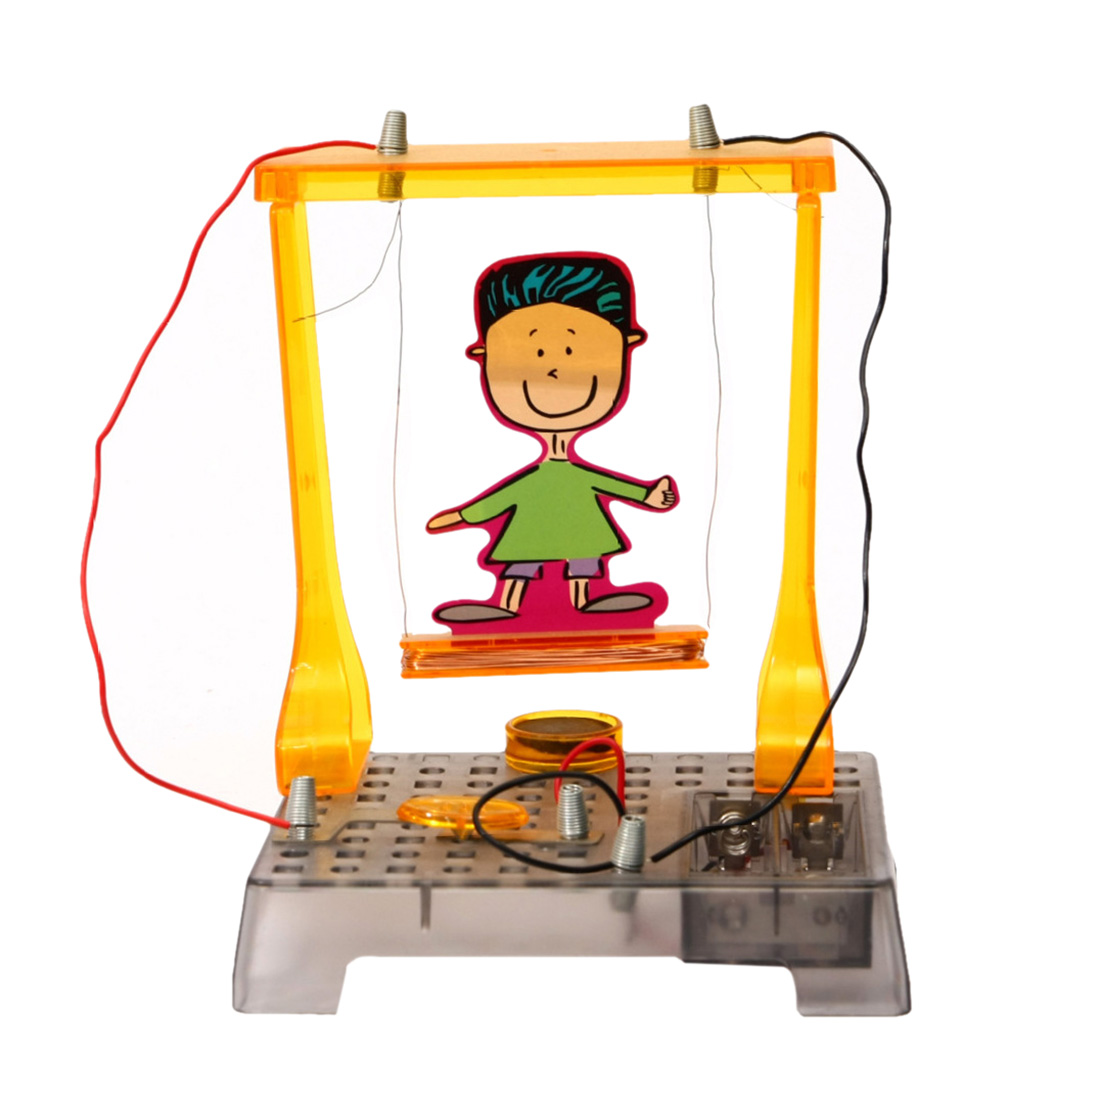 Diy Electromagnetic Swing Magnetic Experiment Steam Stem Toys Learning Toy For Kid Christmas Gifts 100% Guarantee Home